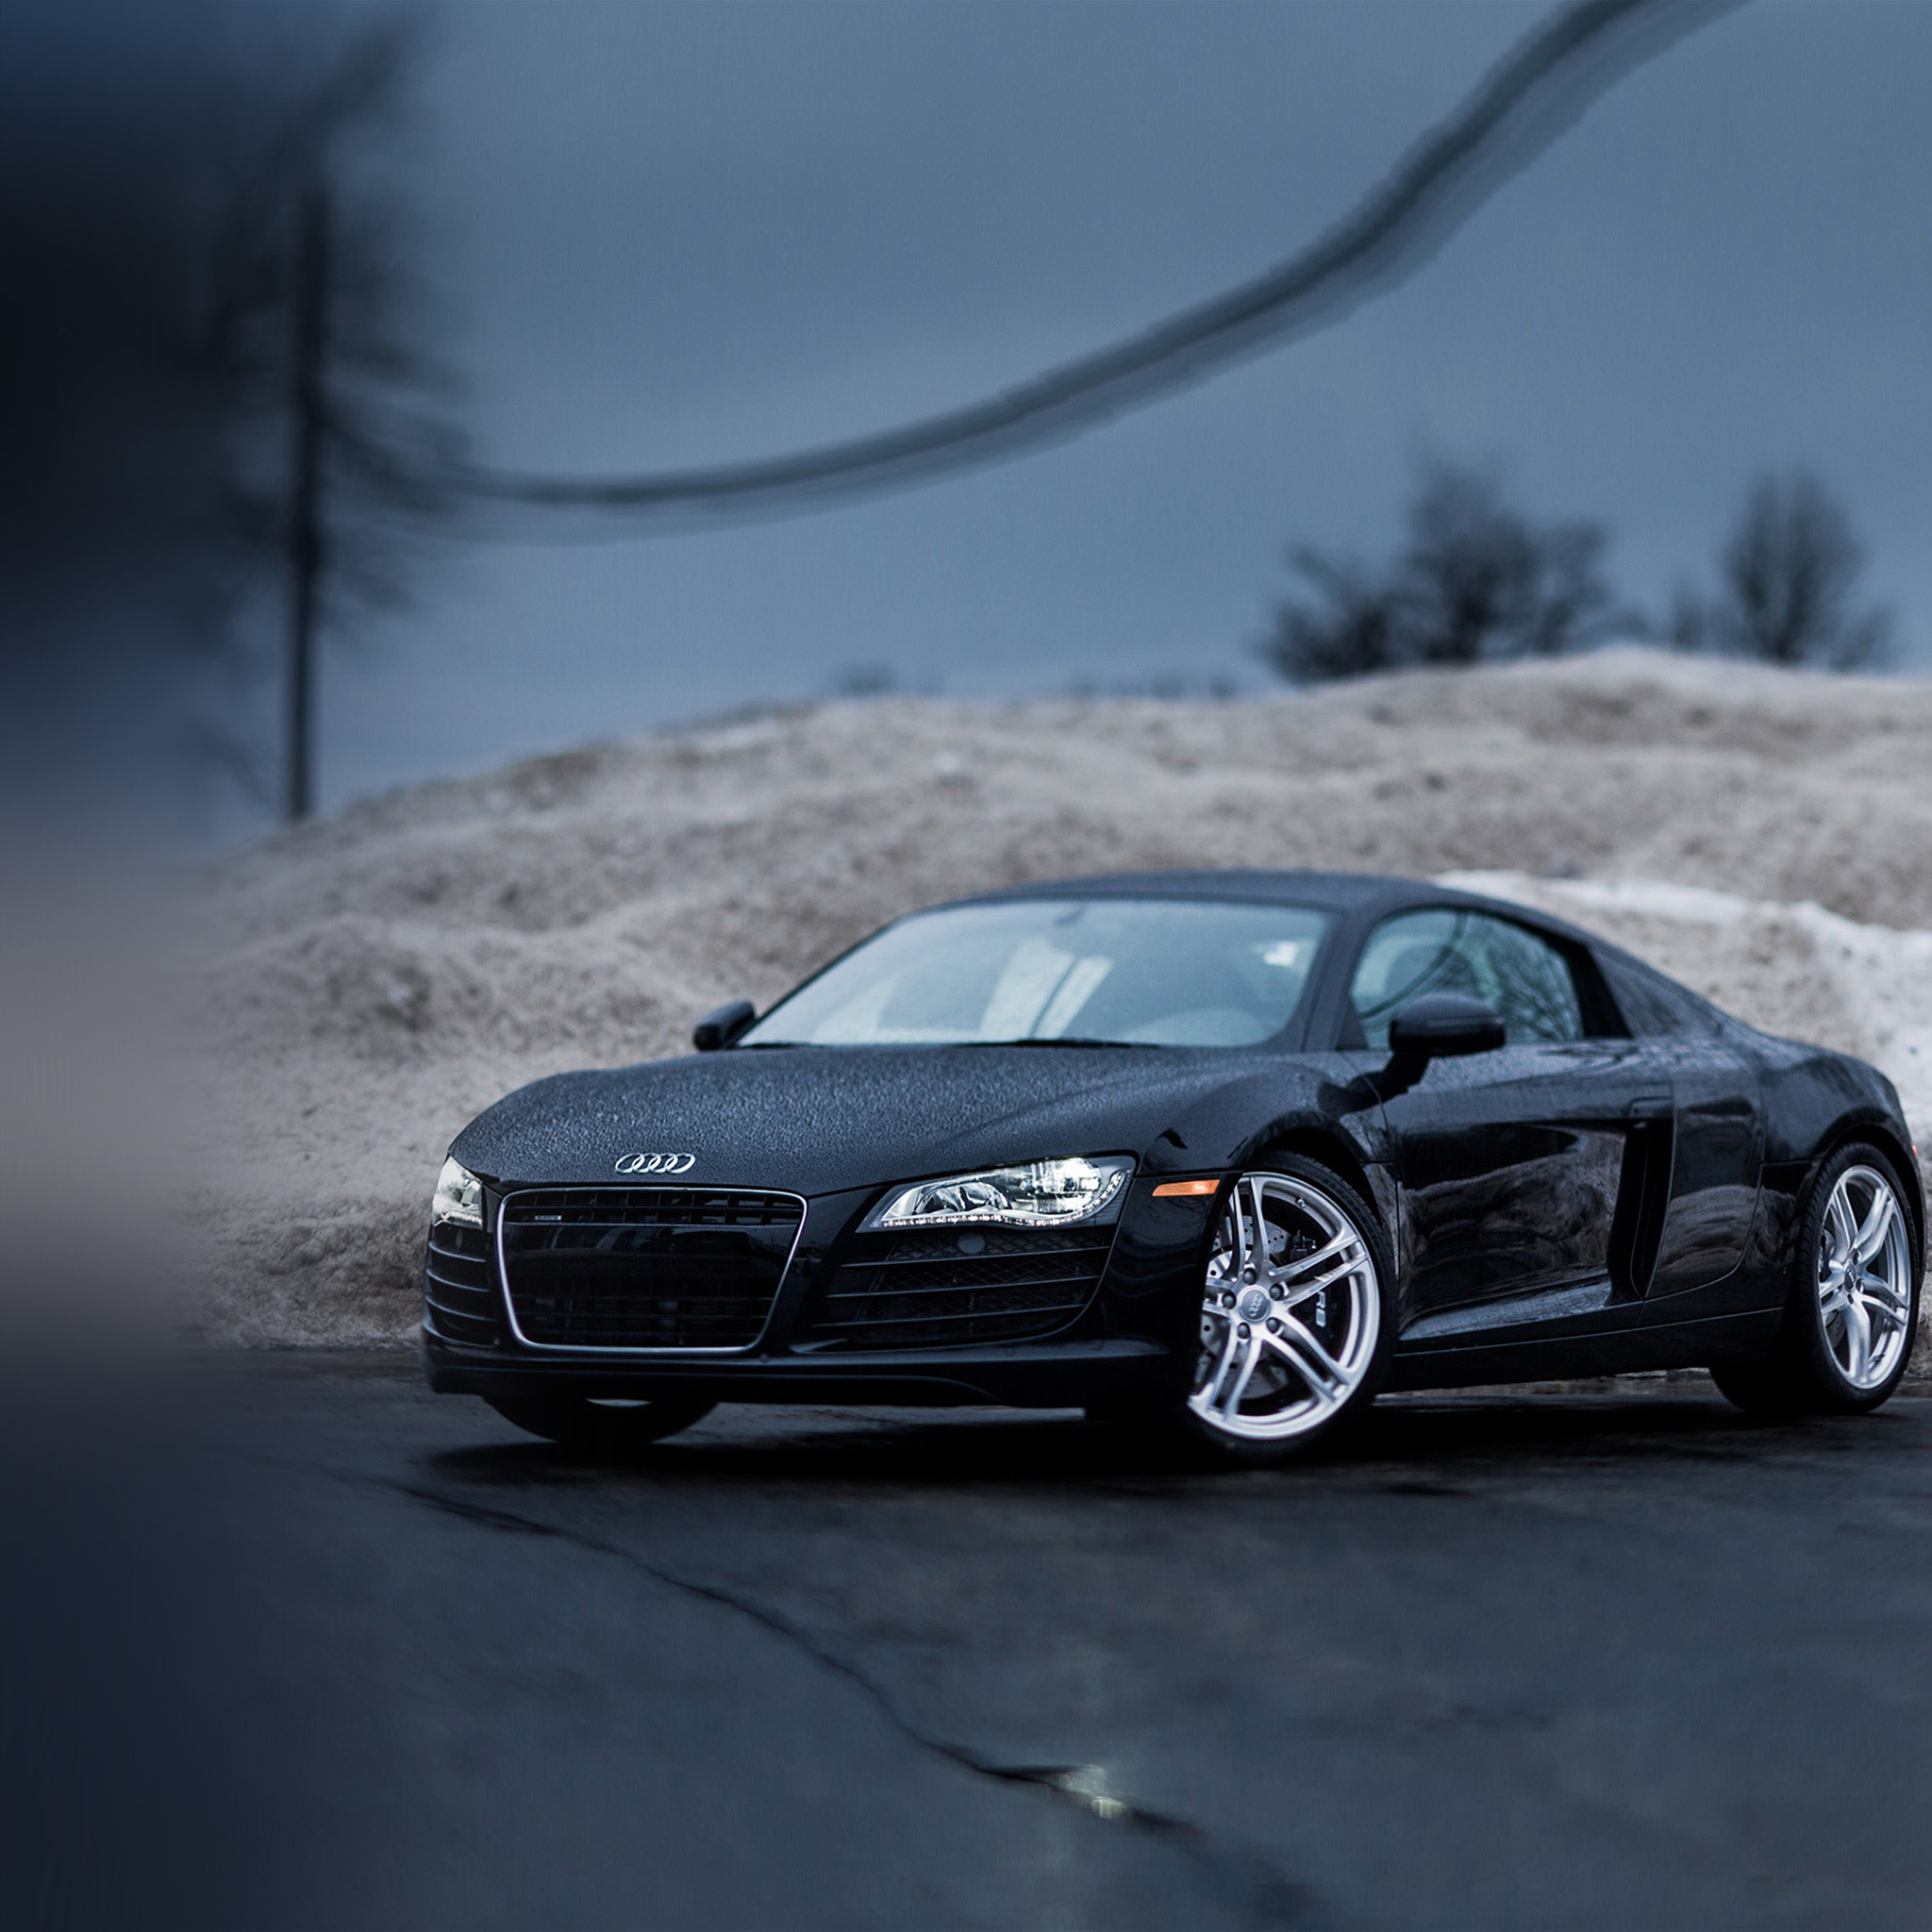 Audi Car Wallpaer